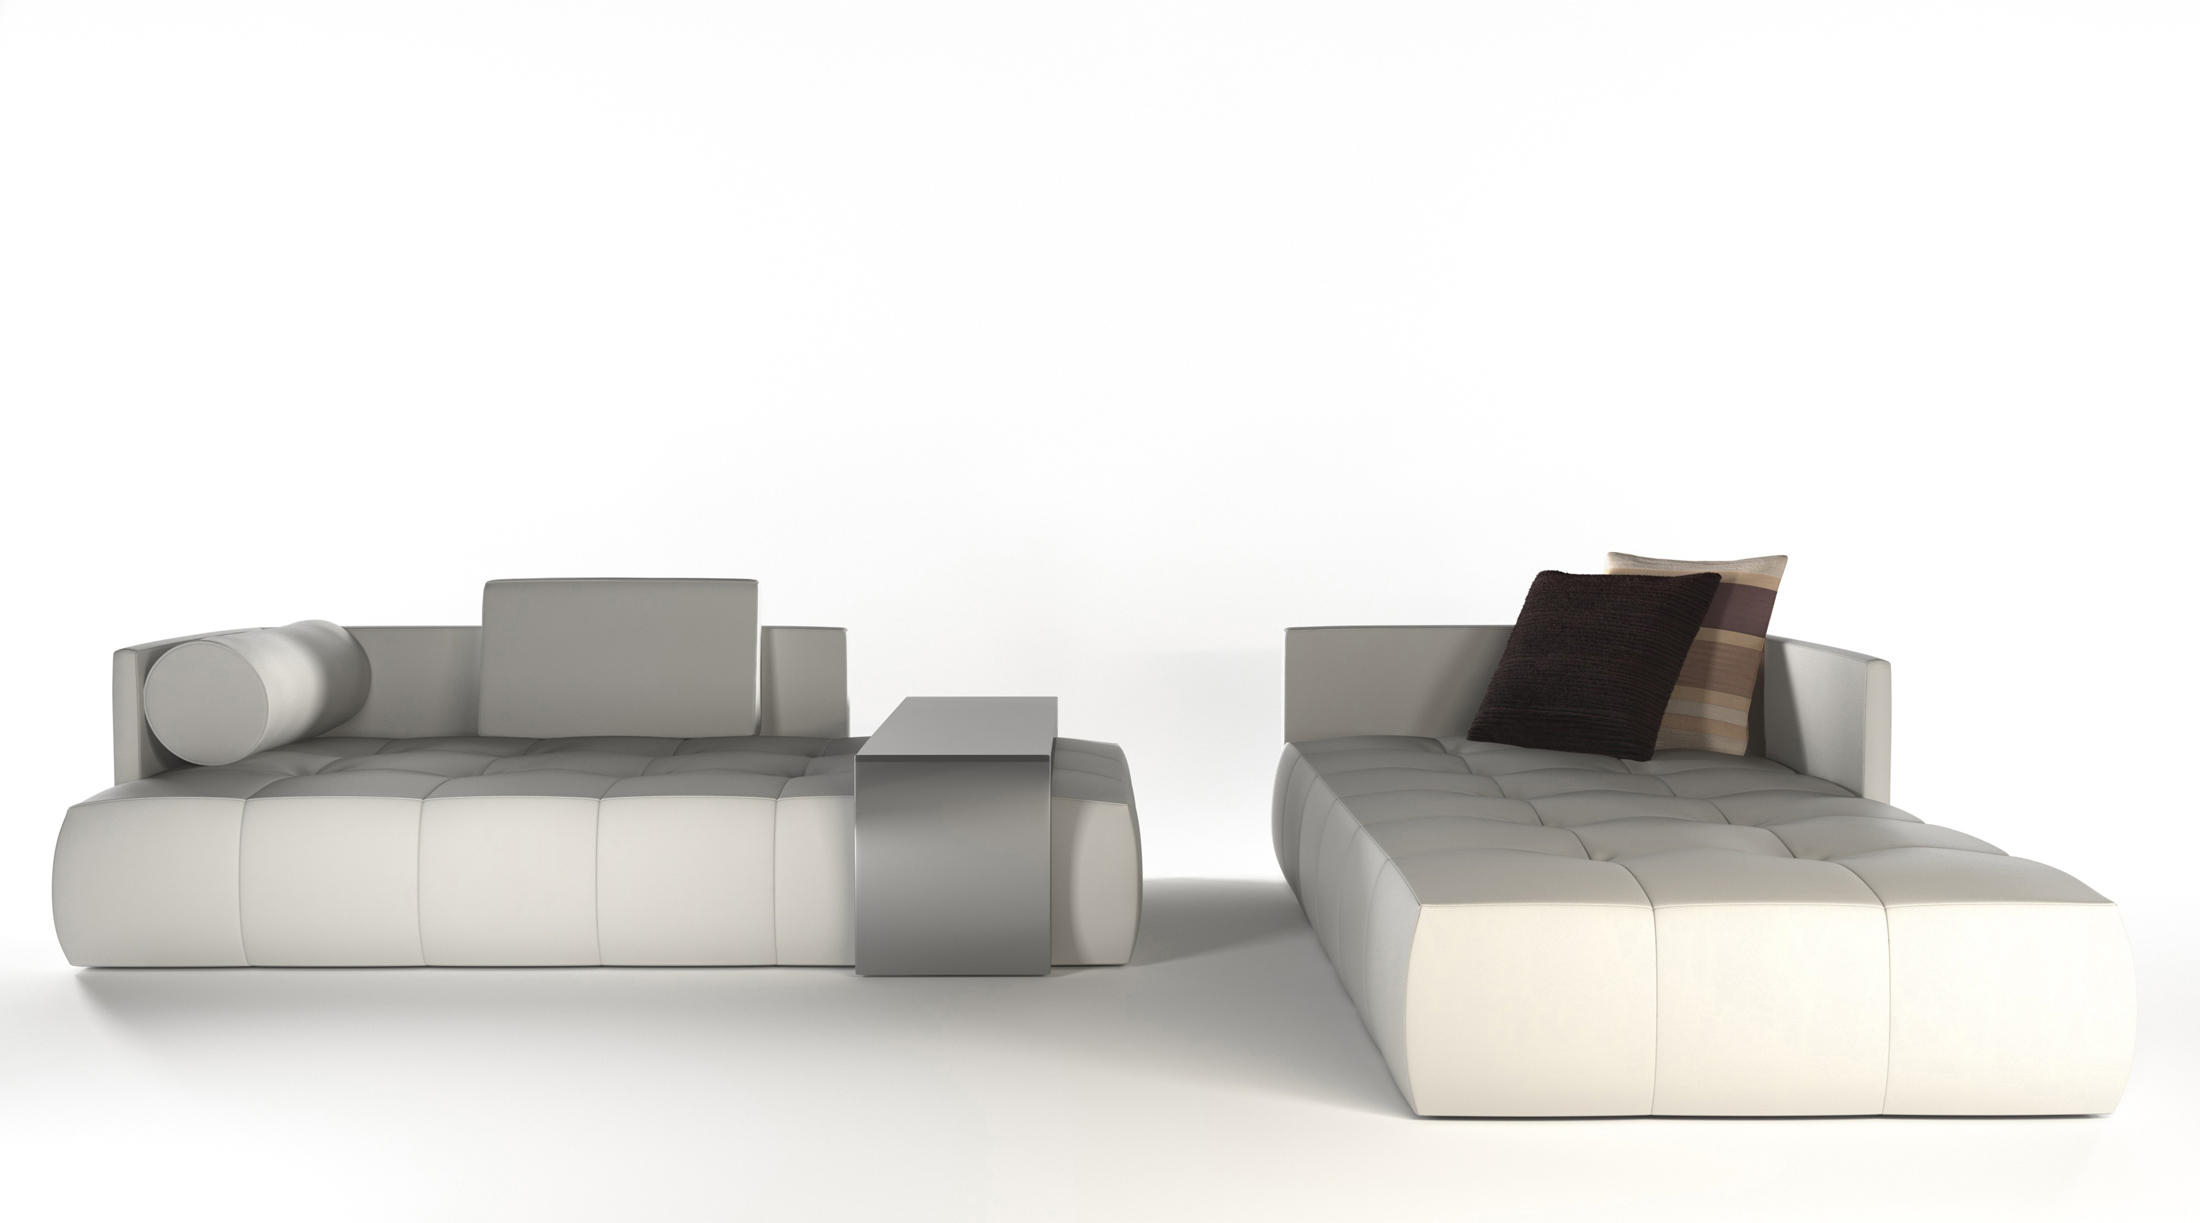 Bettsofa Jazz Sofa Chill Out X8d1 Sofas De Terraza Chill Out Sharon Leal